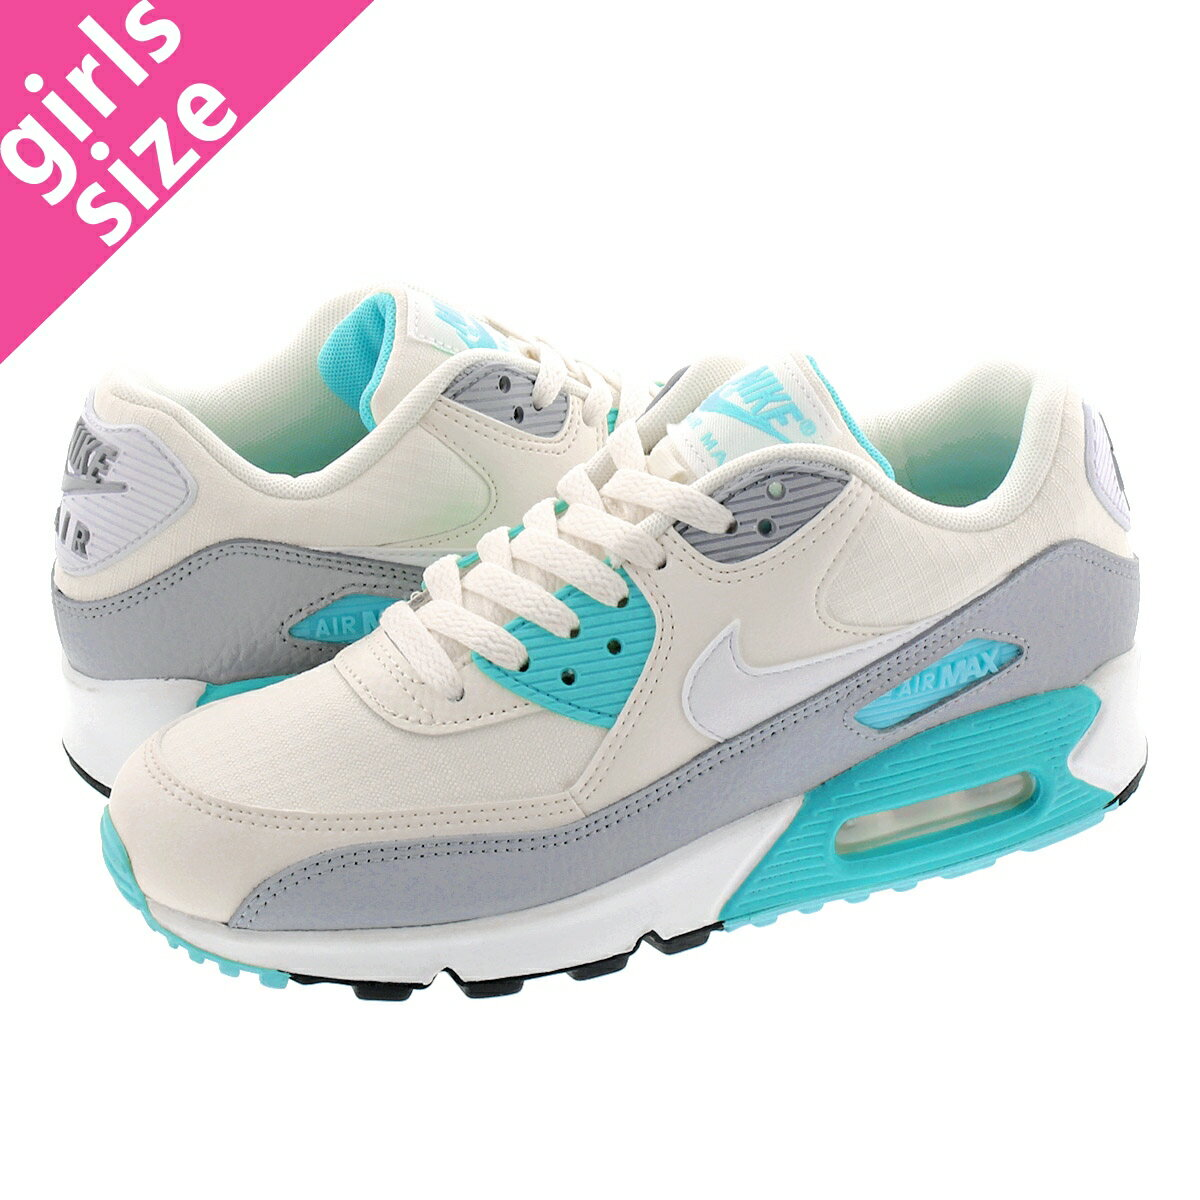 Nike Air Max 90 WMNS 325213 140 Release Date 2